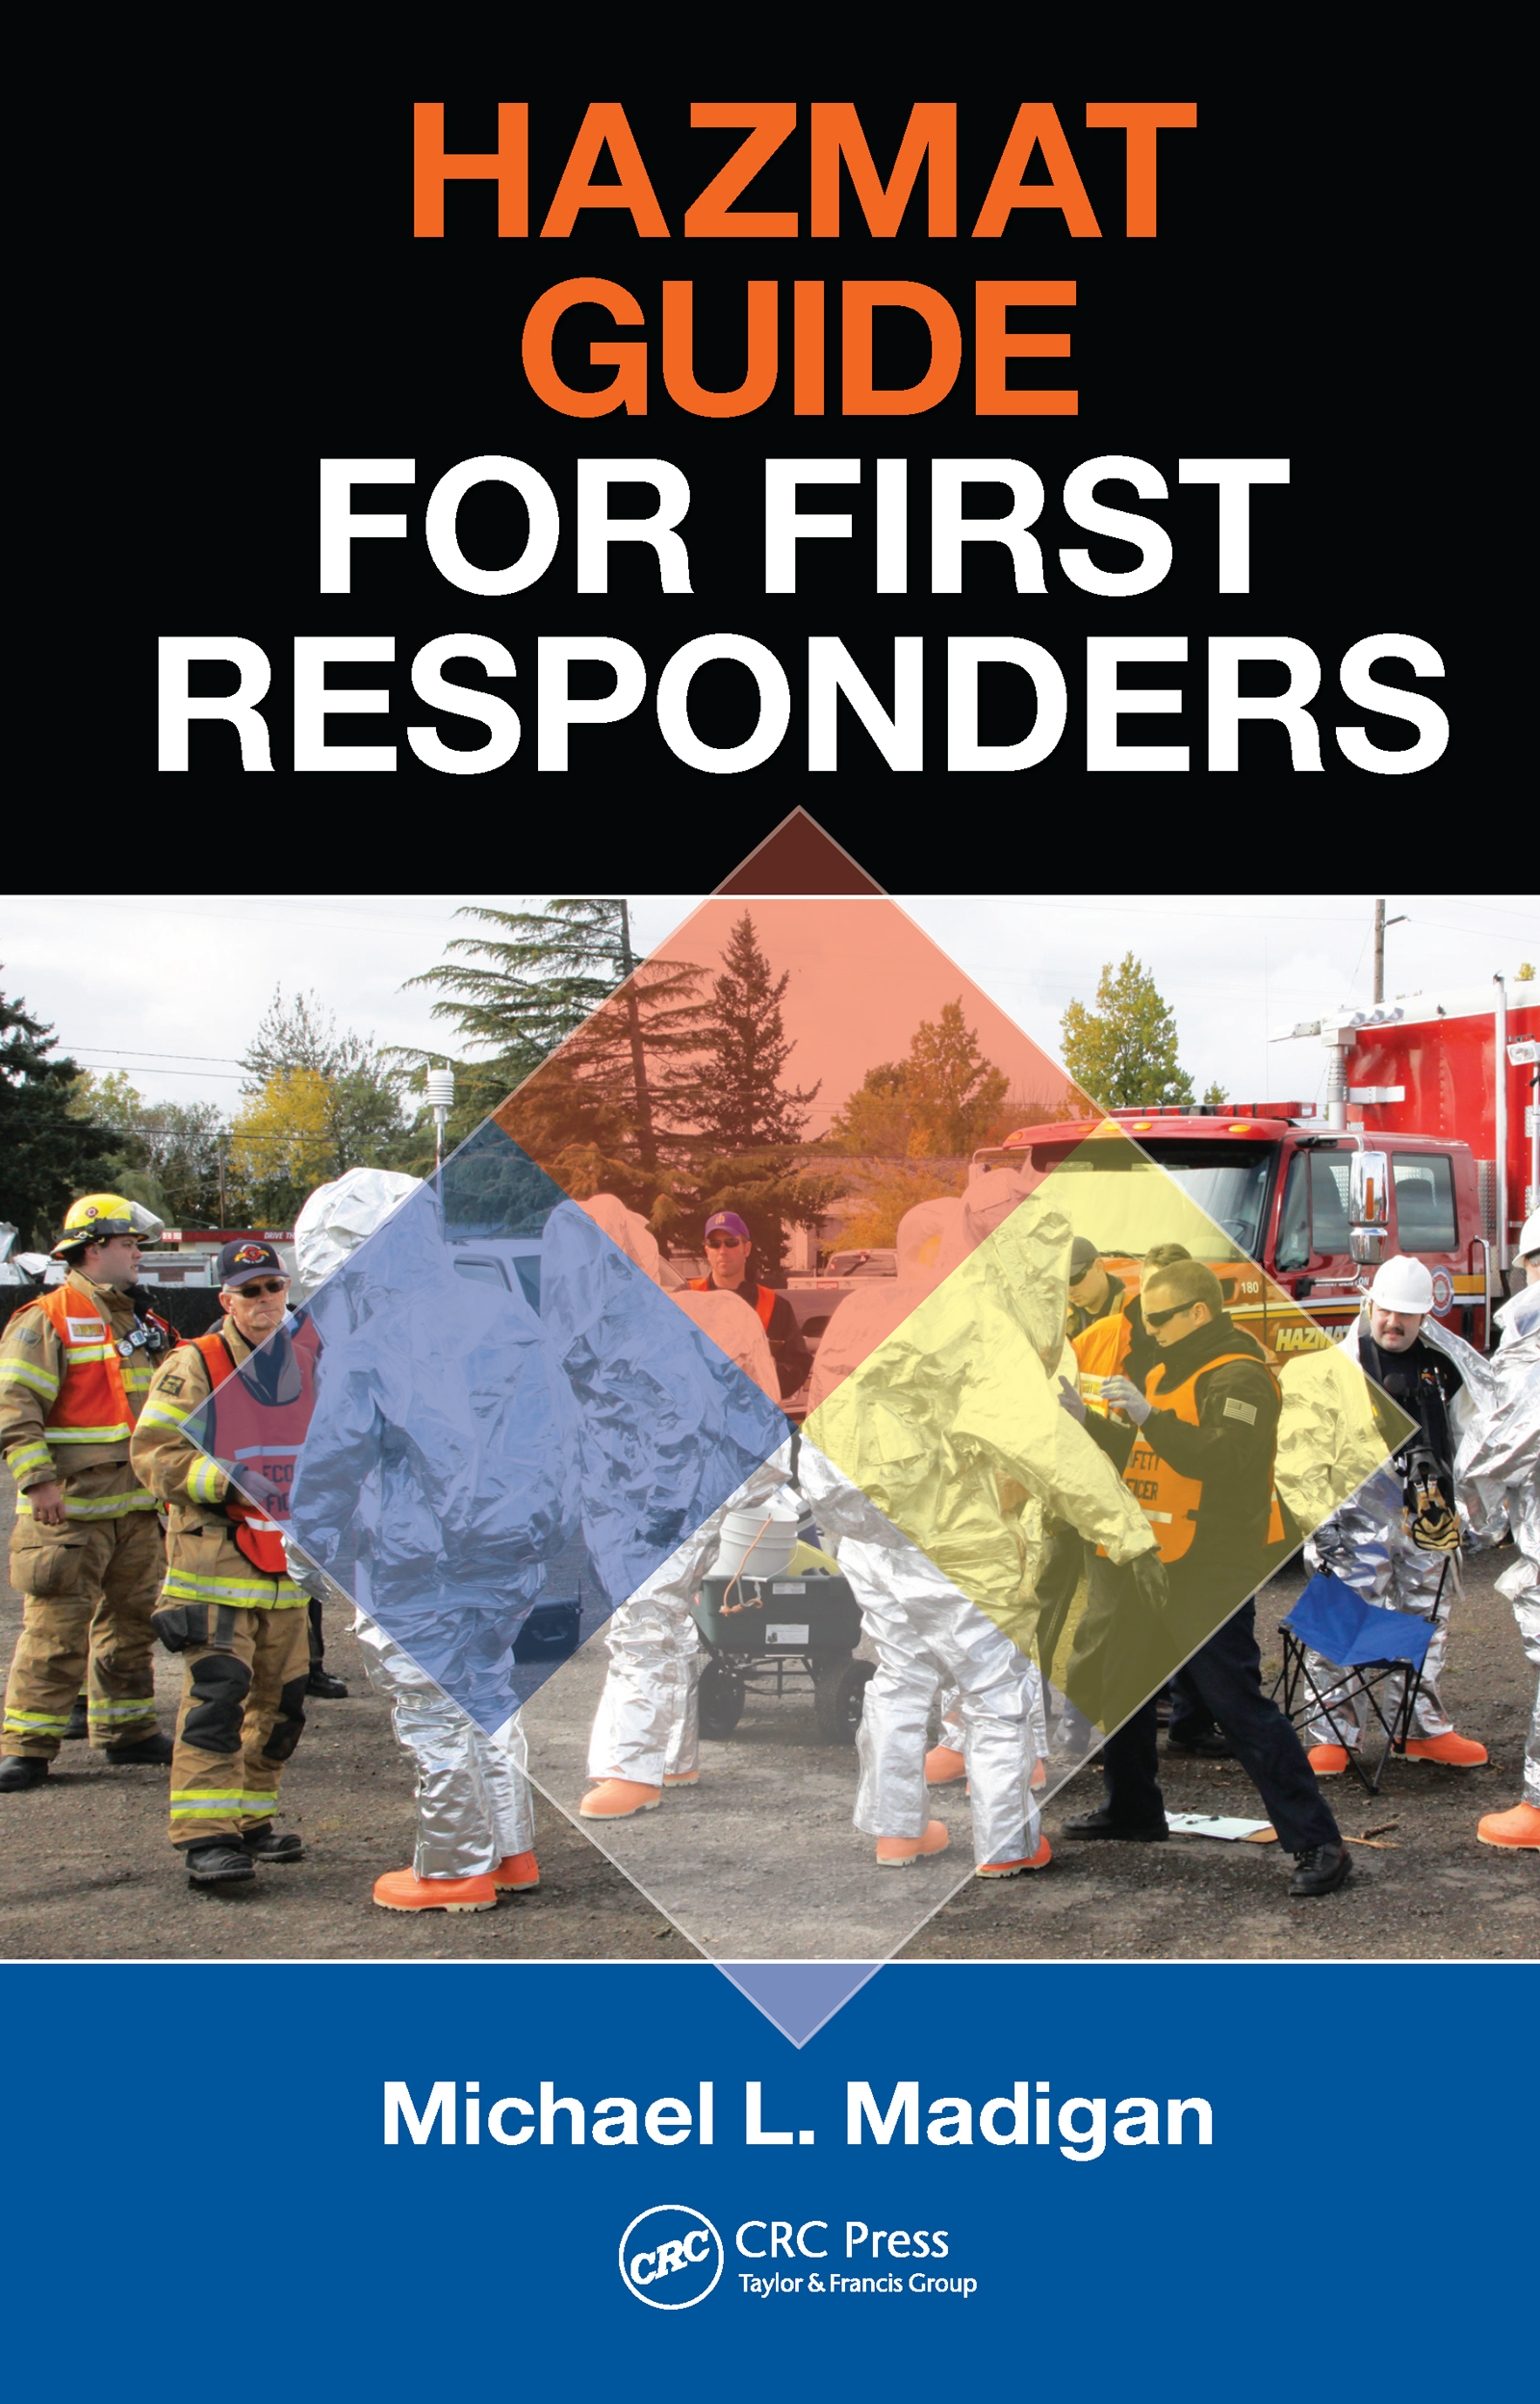 HAZMAT Guide for First Responders book cover